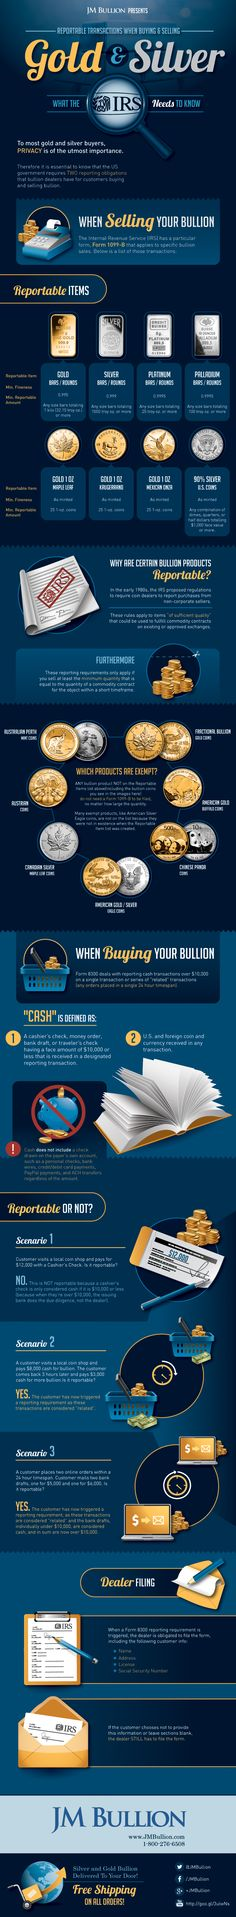 Buying and Selling Precious Metals: What the IRS Needs to Know